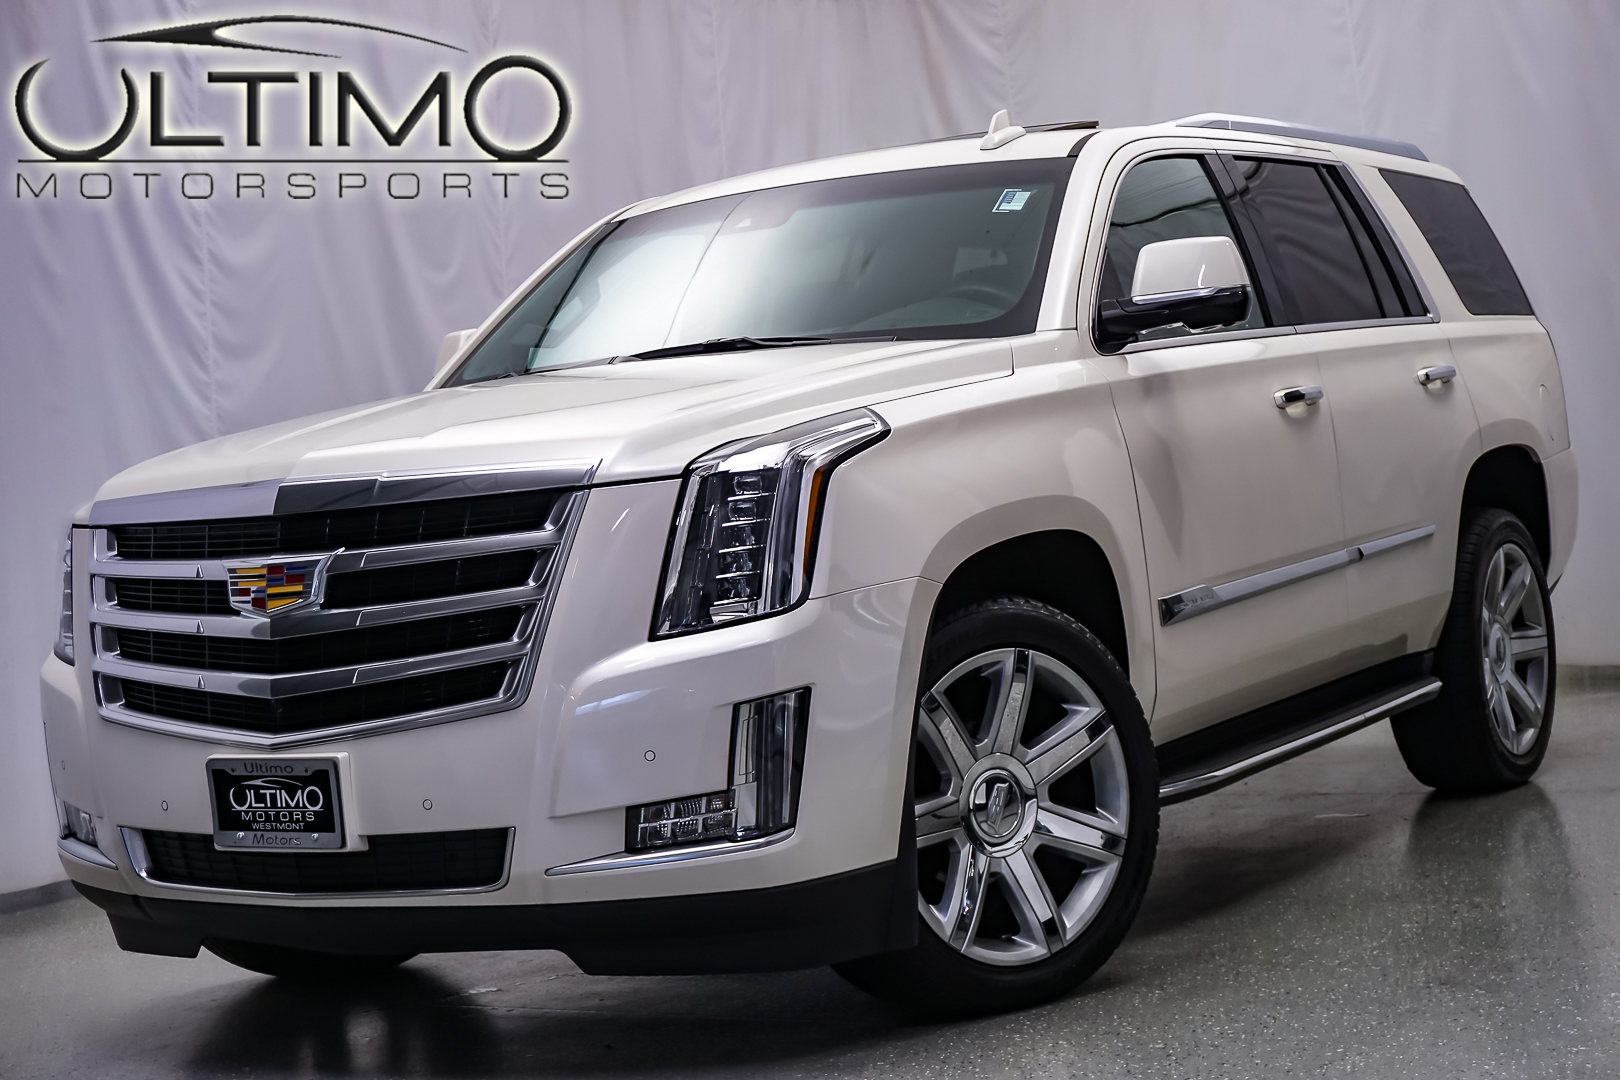 pre owned 2016 cadillac escalade luxury collection suv in warrenville u2853 ultimo motors. Black Bedroom Furniture Sets. Home Design Ideas